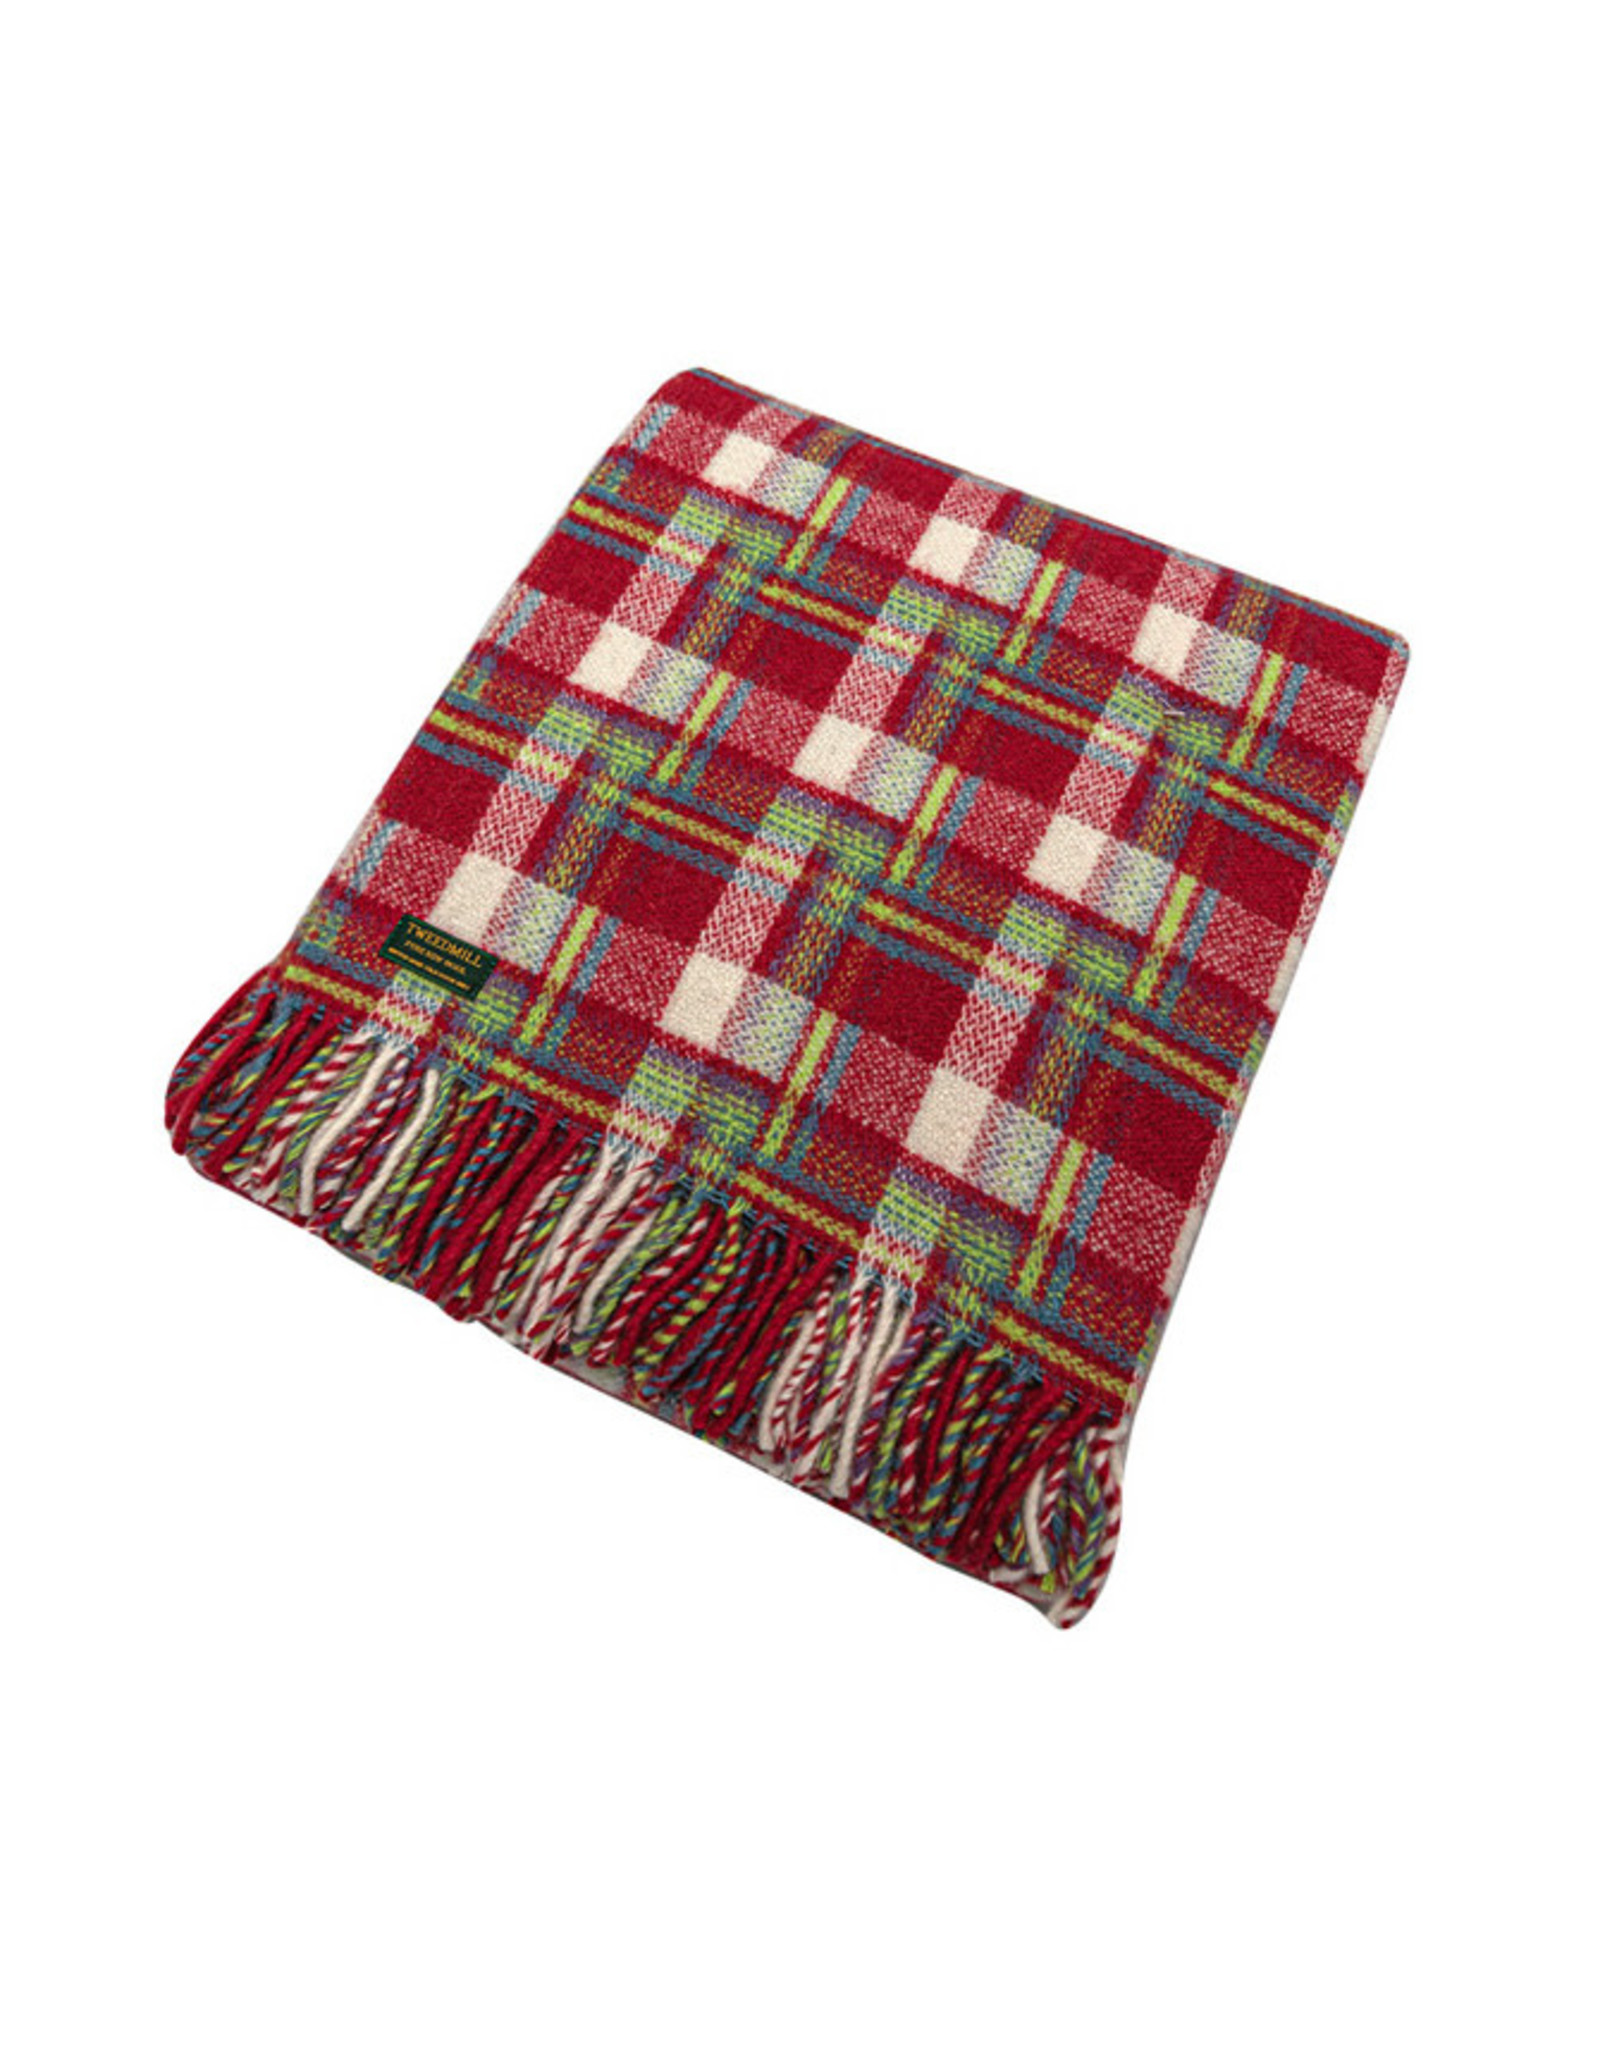 Welsh Wool Throw - Amelia Check